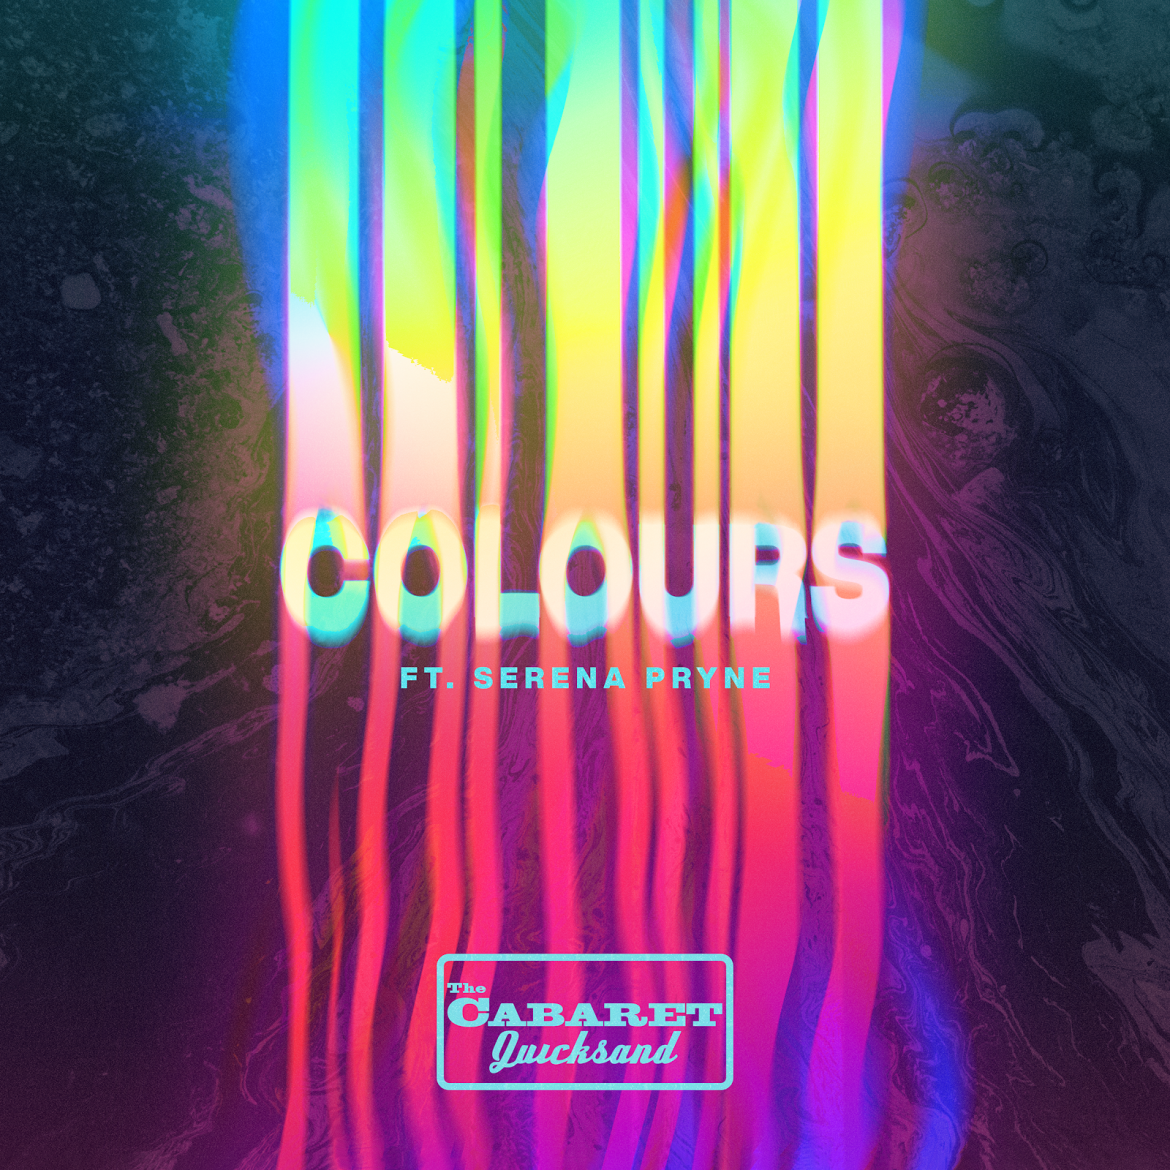 The Cabaret Quicksand released new song, Colours, on Spotify